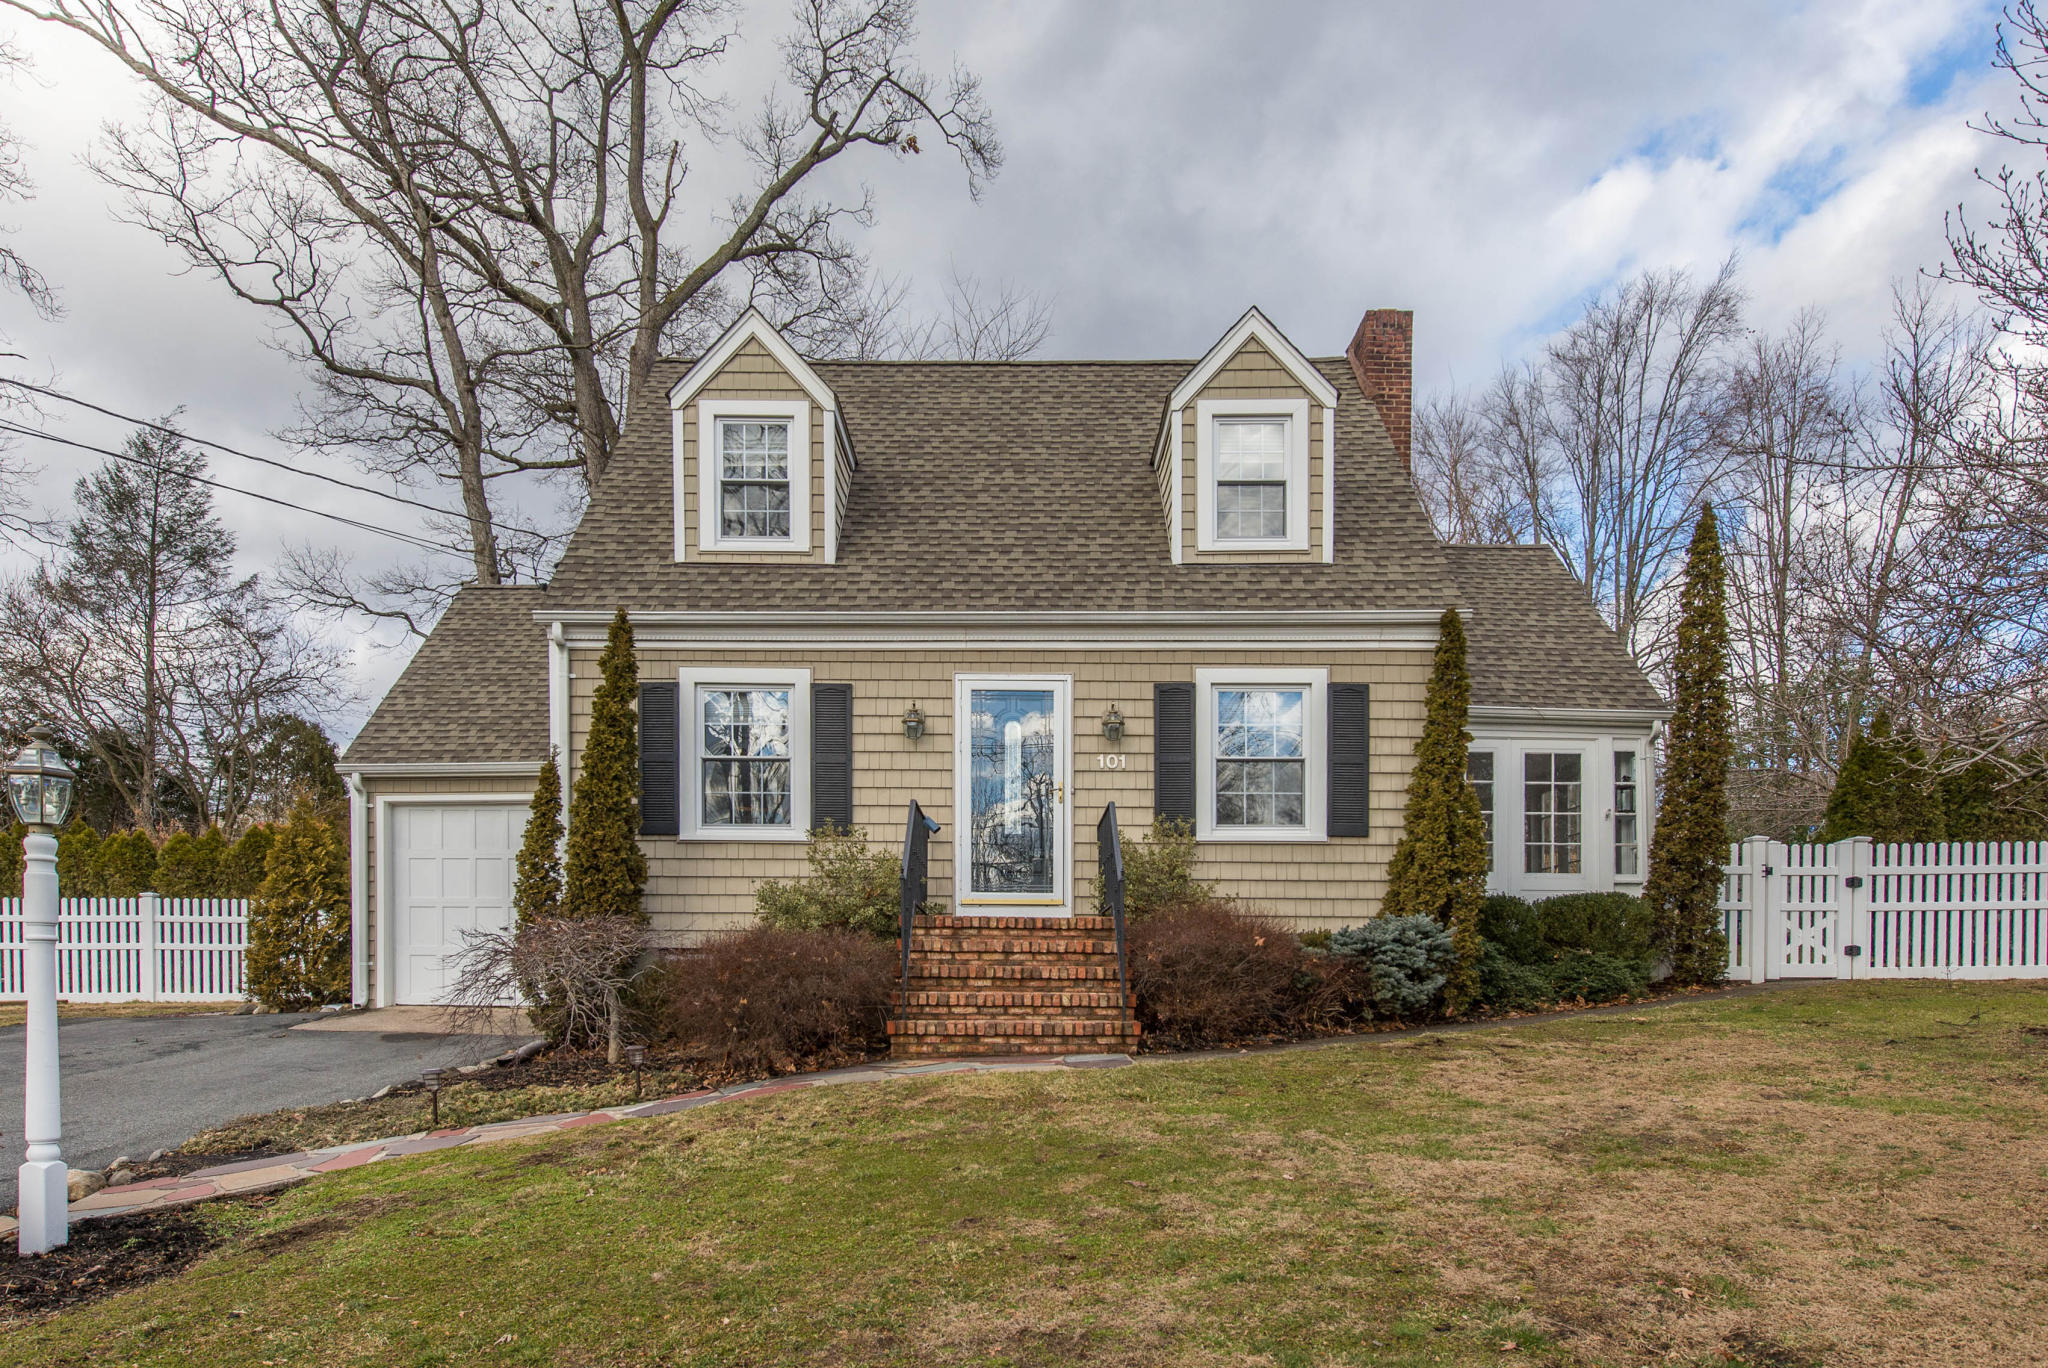 101 jackson ave, wayne, nj 07470 - estimate and home details | trulia